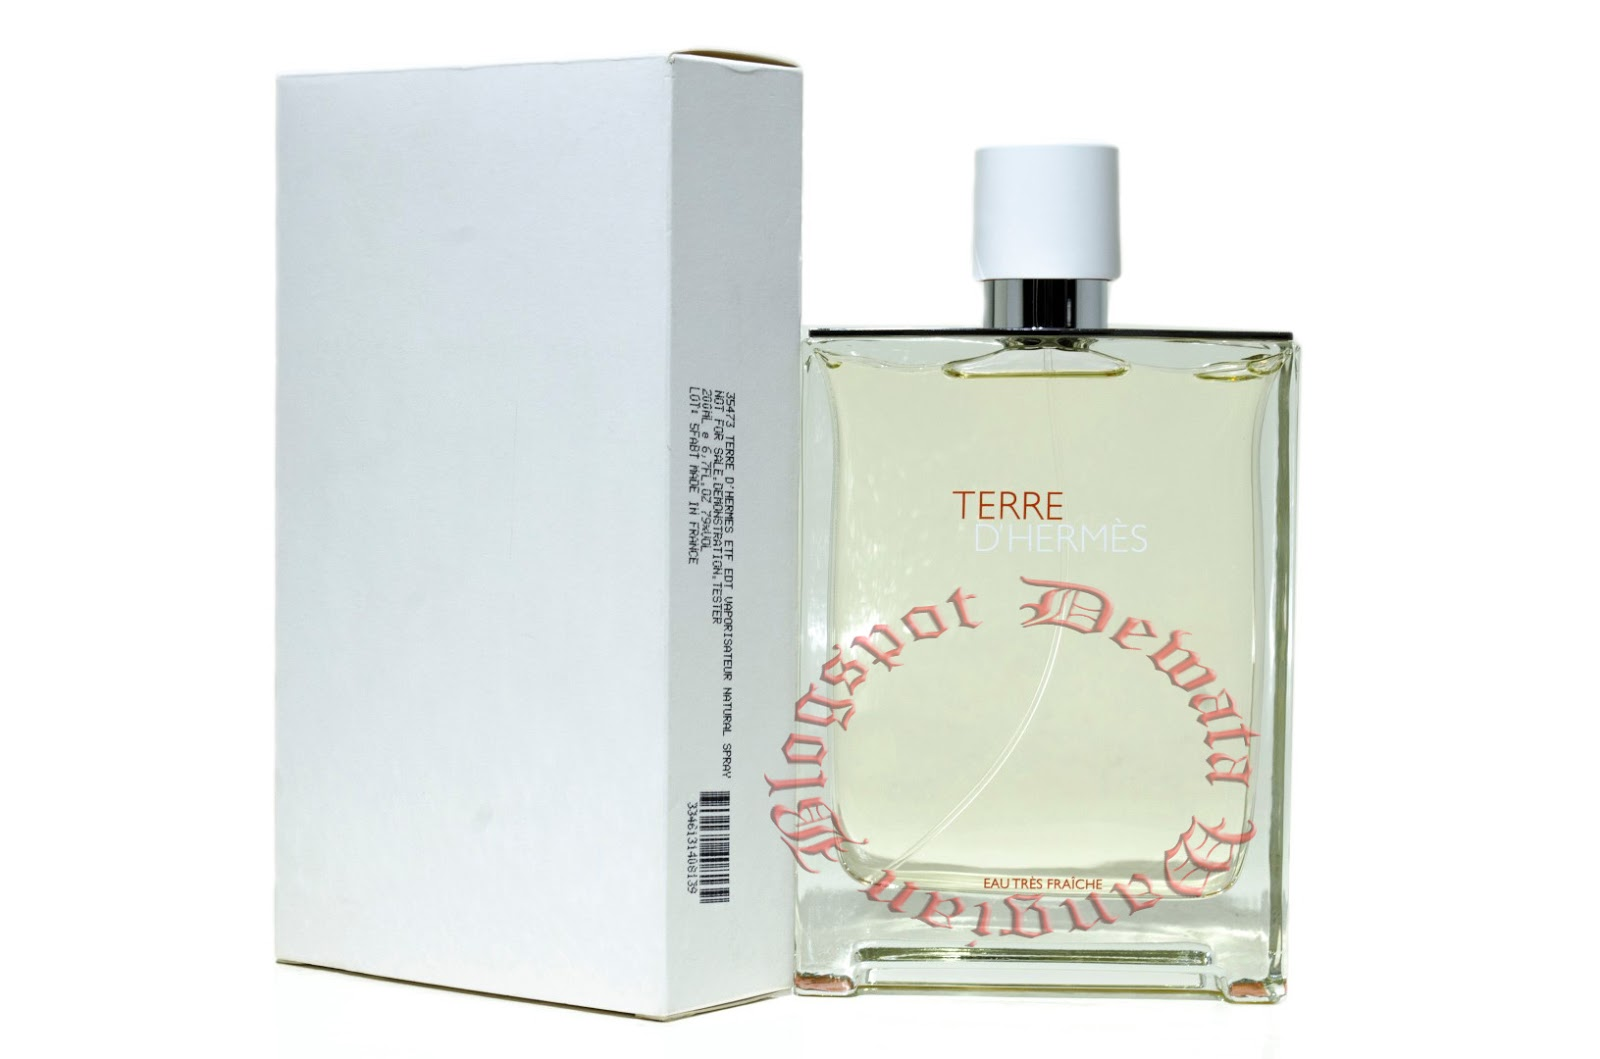 a83945956f98 Terre d Hermès Eau Très Fraîche is a men s fragrance by Hermès. The scent  was launched in 2014. The new dedication of classical Terre d Hermès makes  its ...